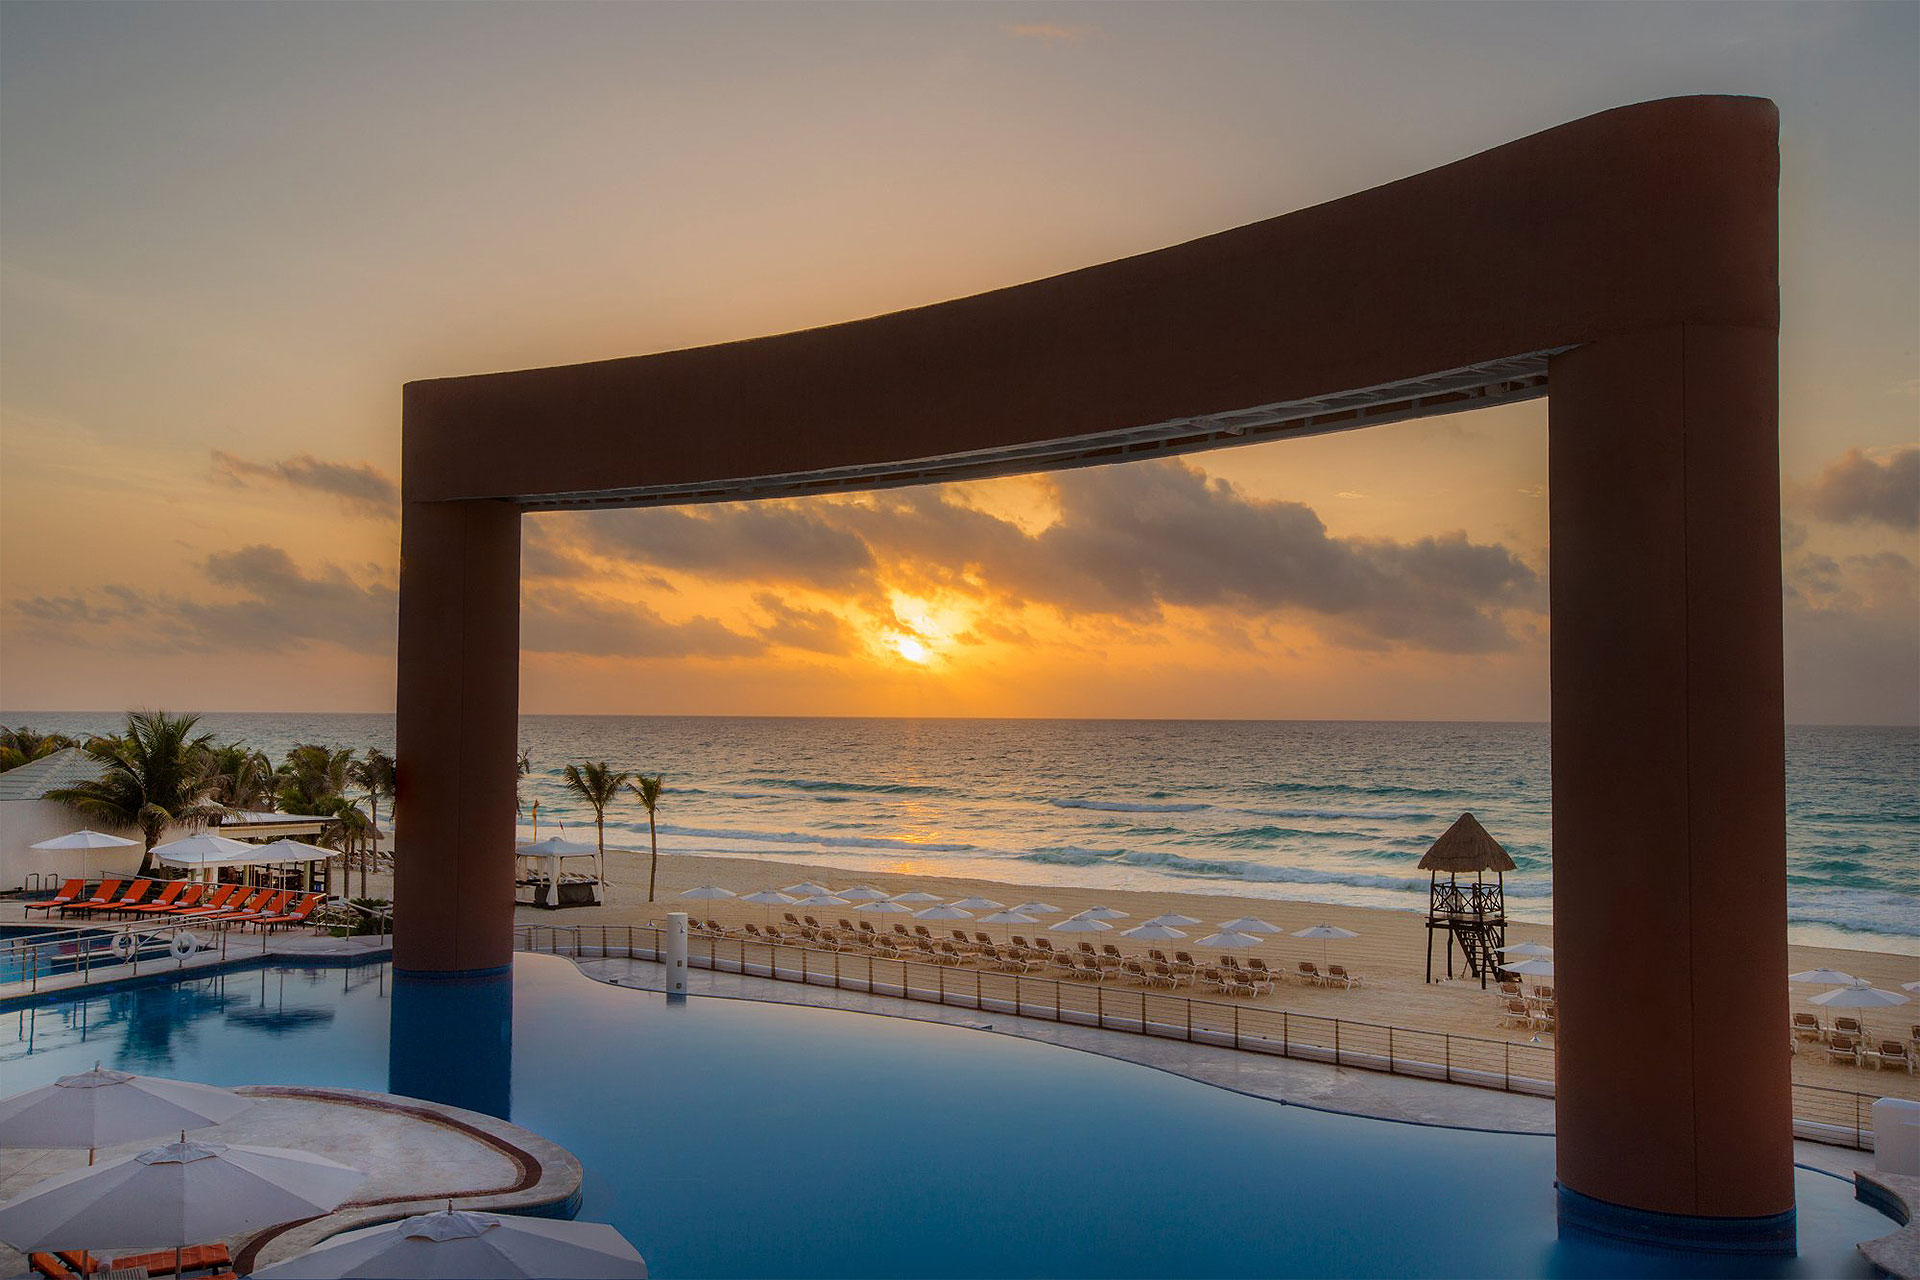 Beach Palace Cancun; Courtesy of Beach Palace Cancun